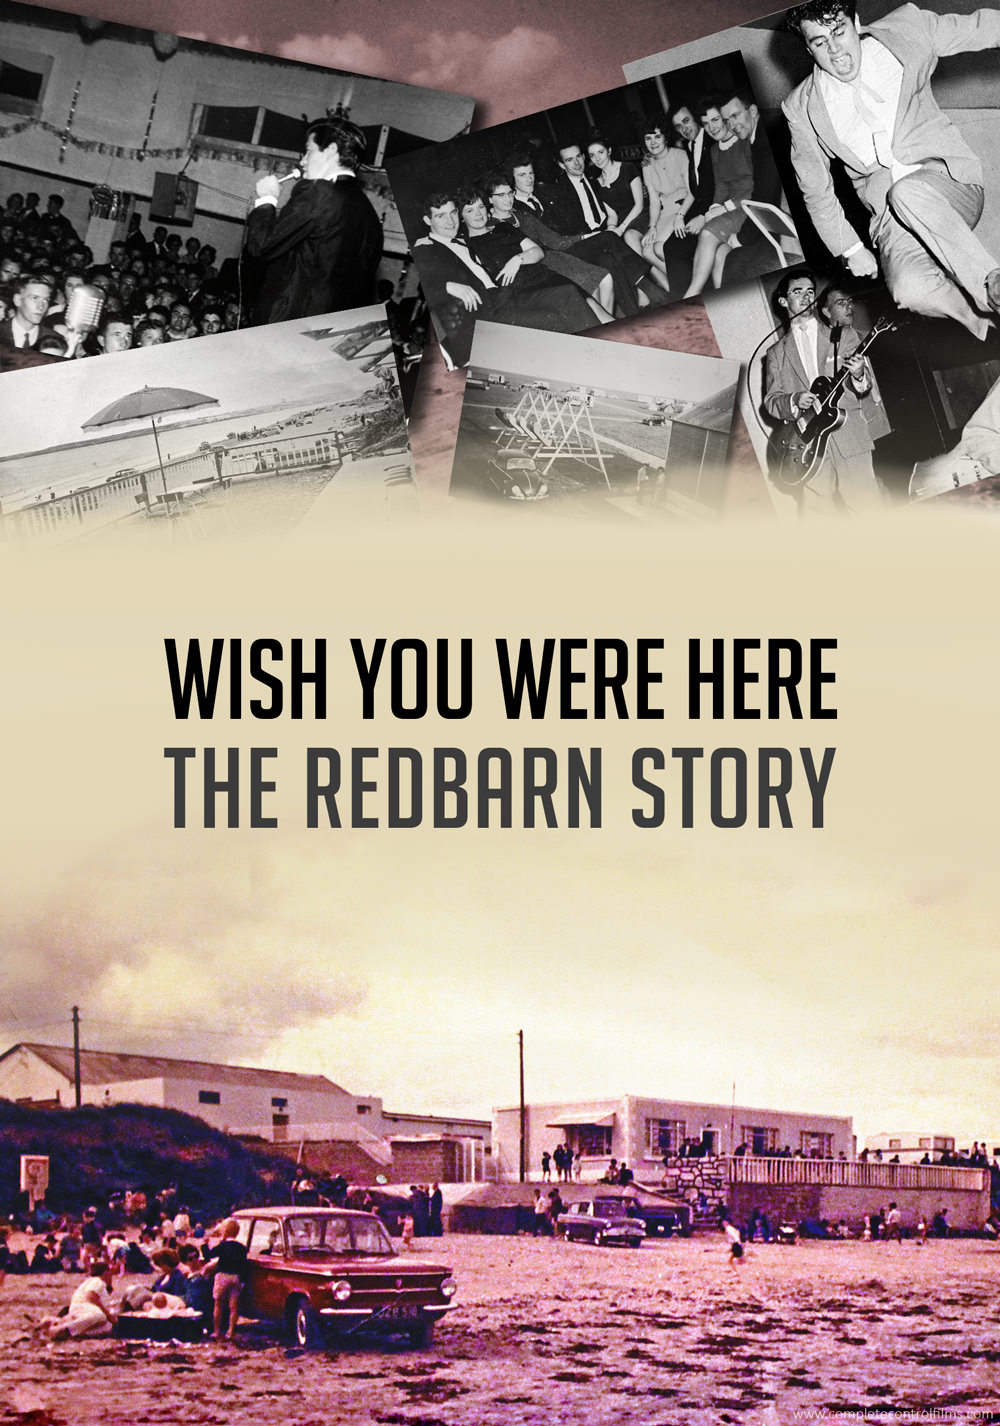 Wish You Were Here: The Redbarn Story Archives - Complete ...